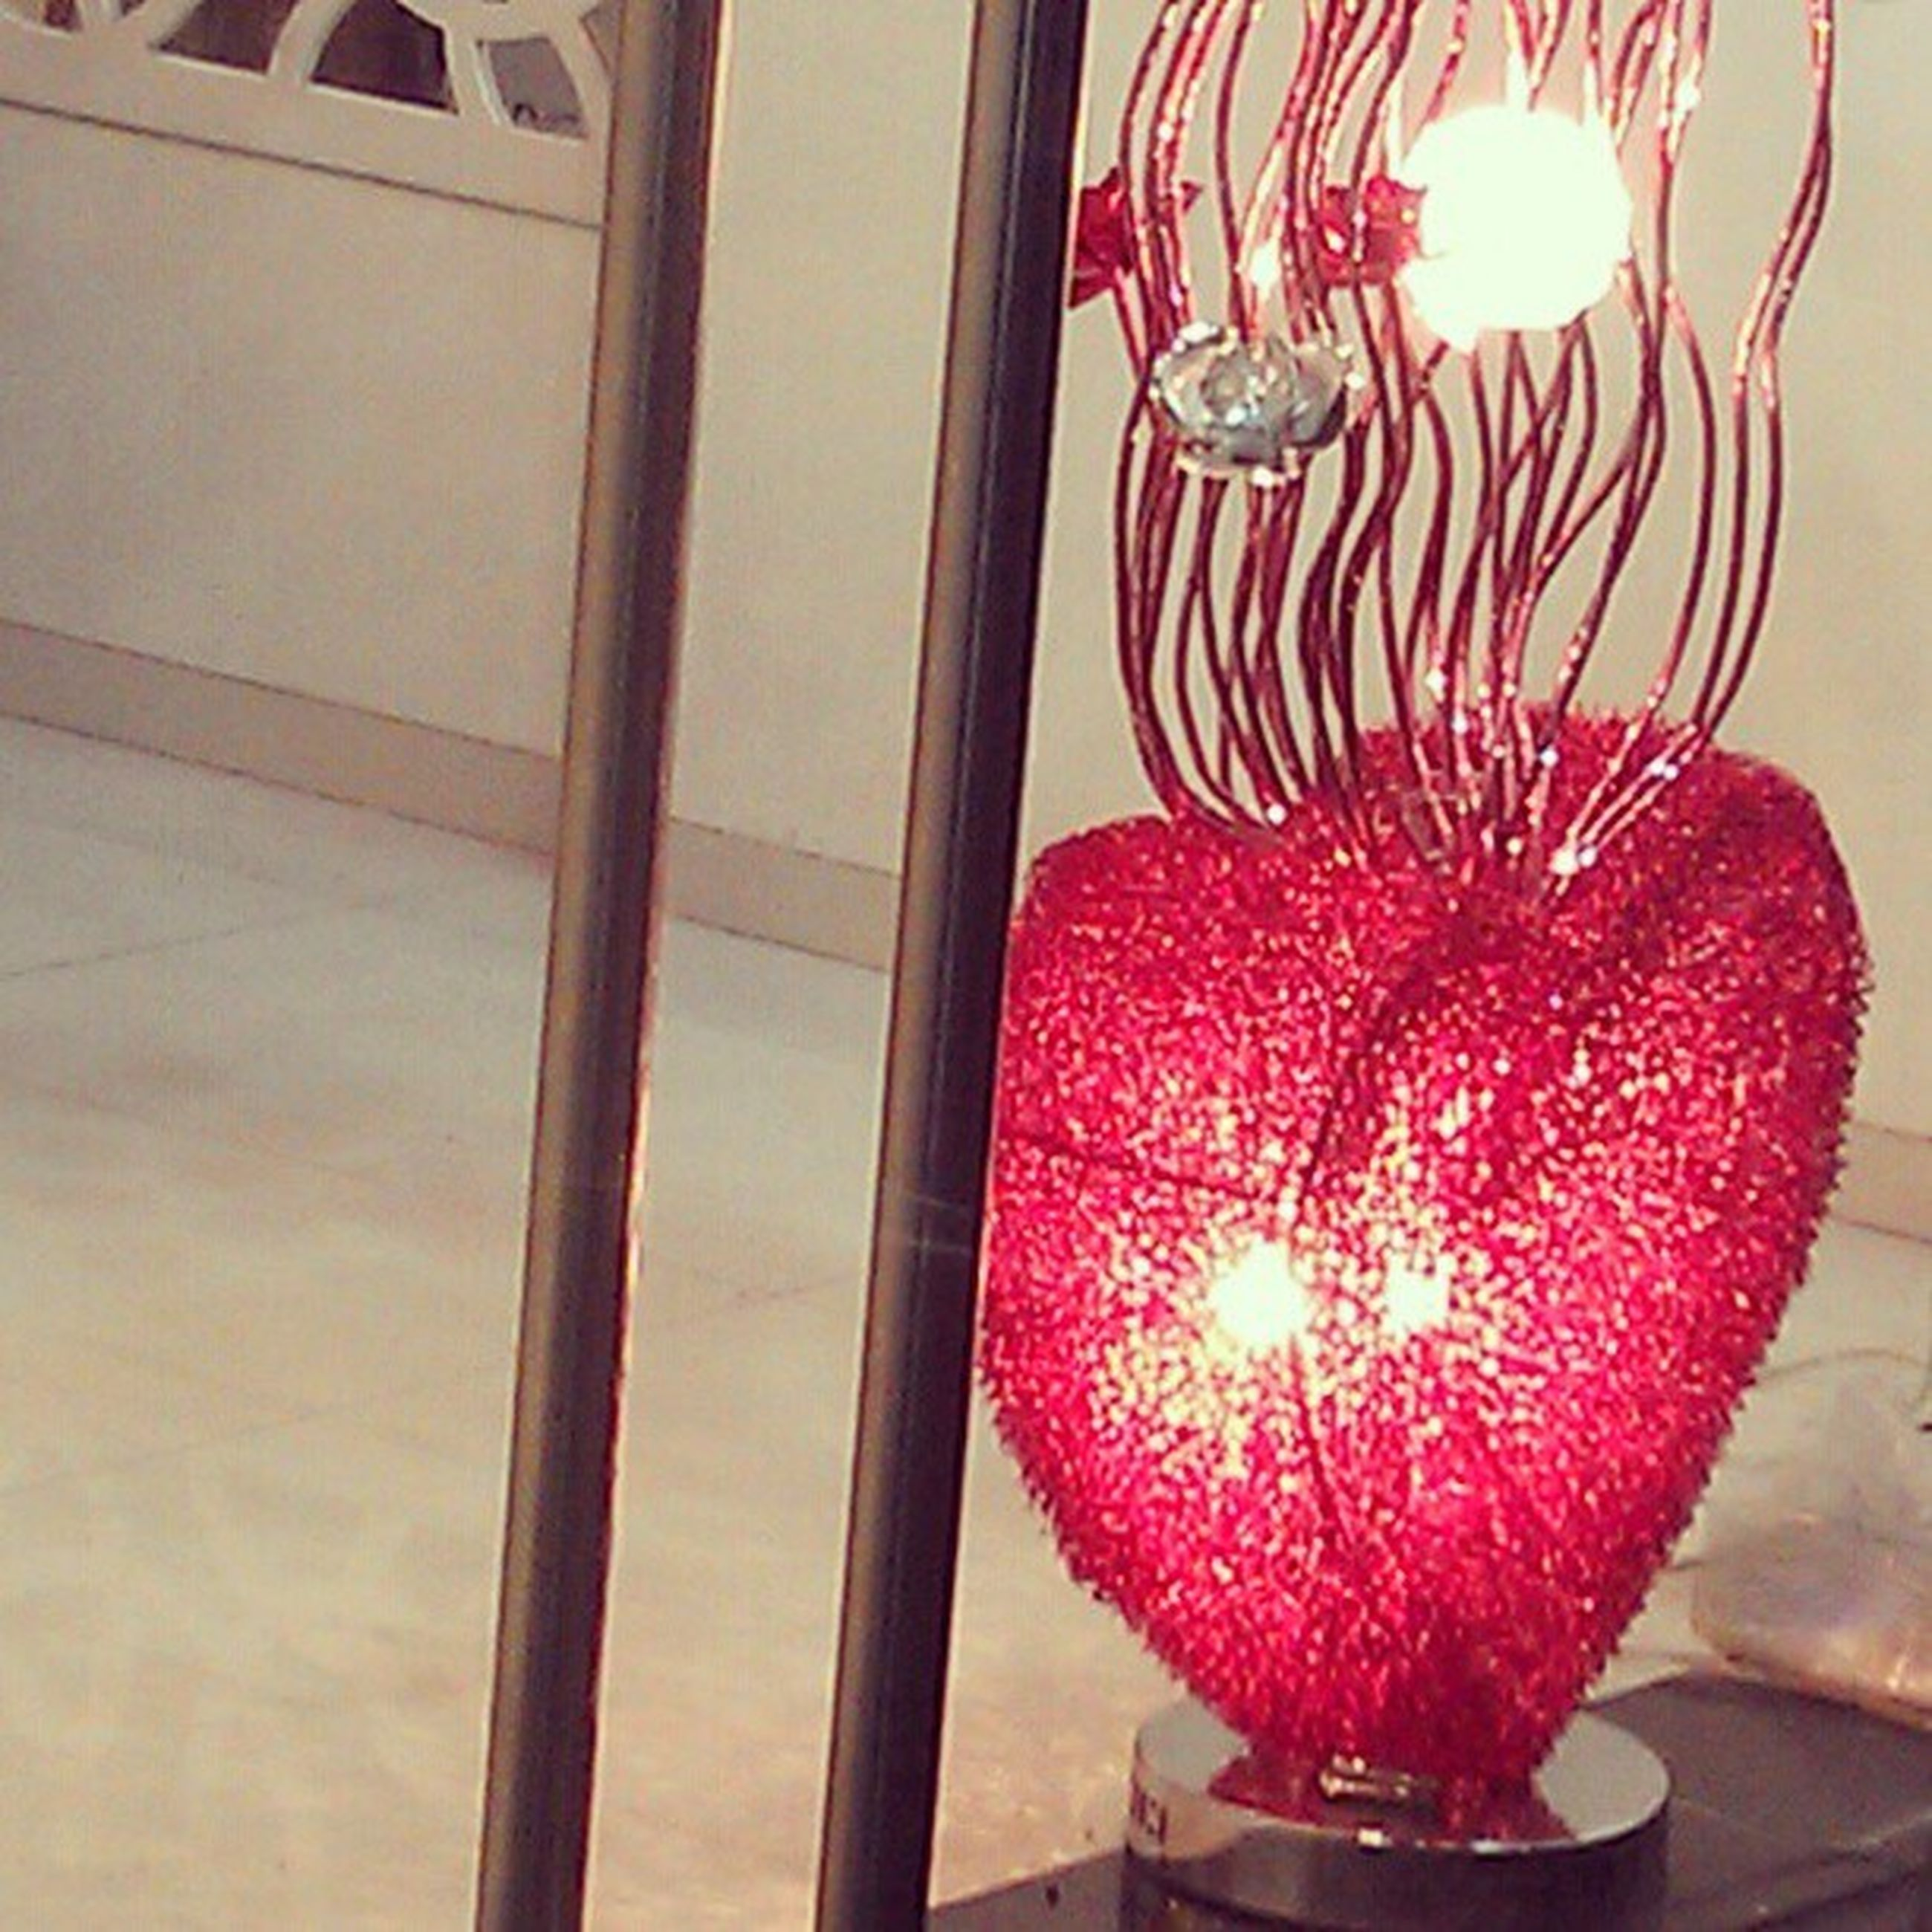 indoors, decoration, illuminated, lighting equipment, glowing, candle, celebration, home interior, glass - material, red, table, hanging, close-up, decor, no people, pink color, still life, flower, christmas, lit